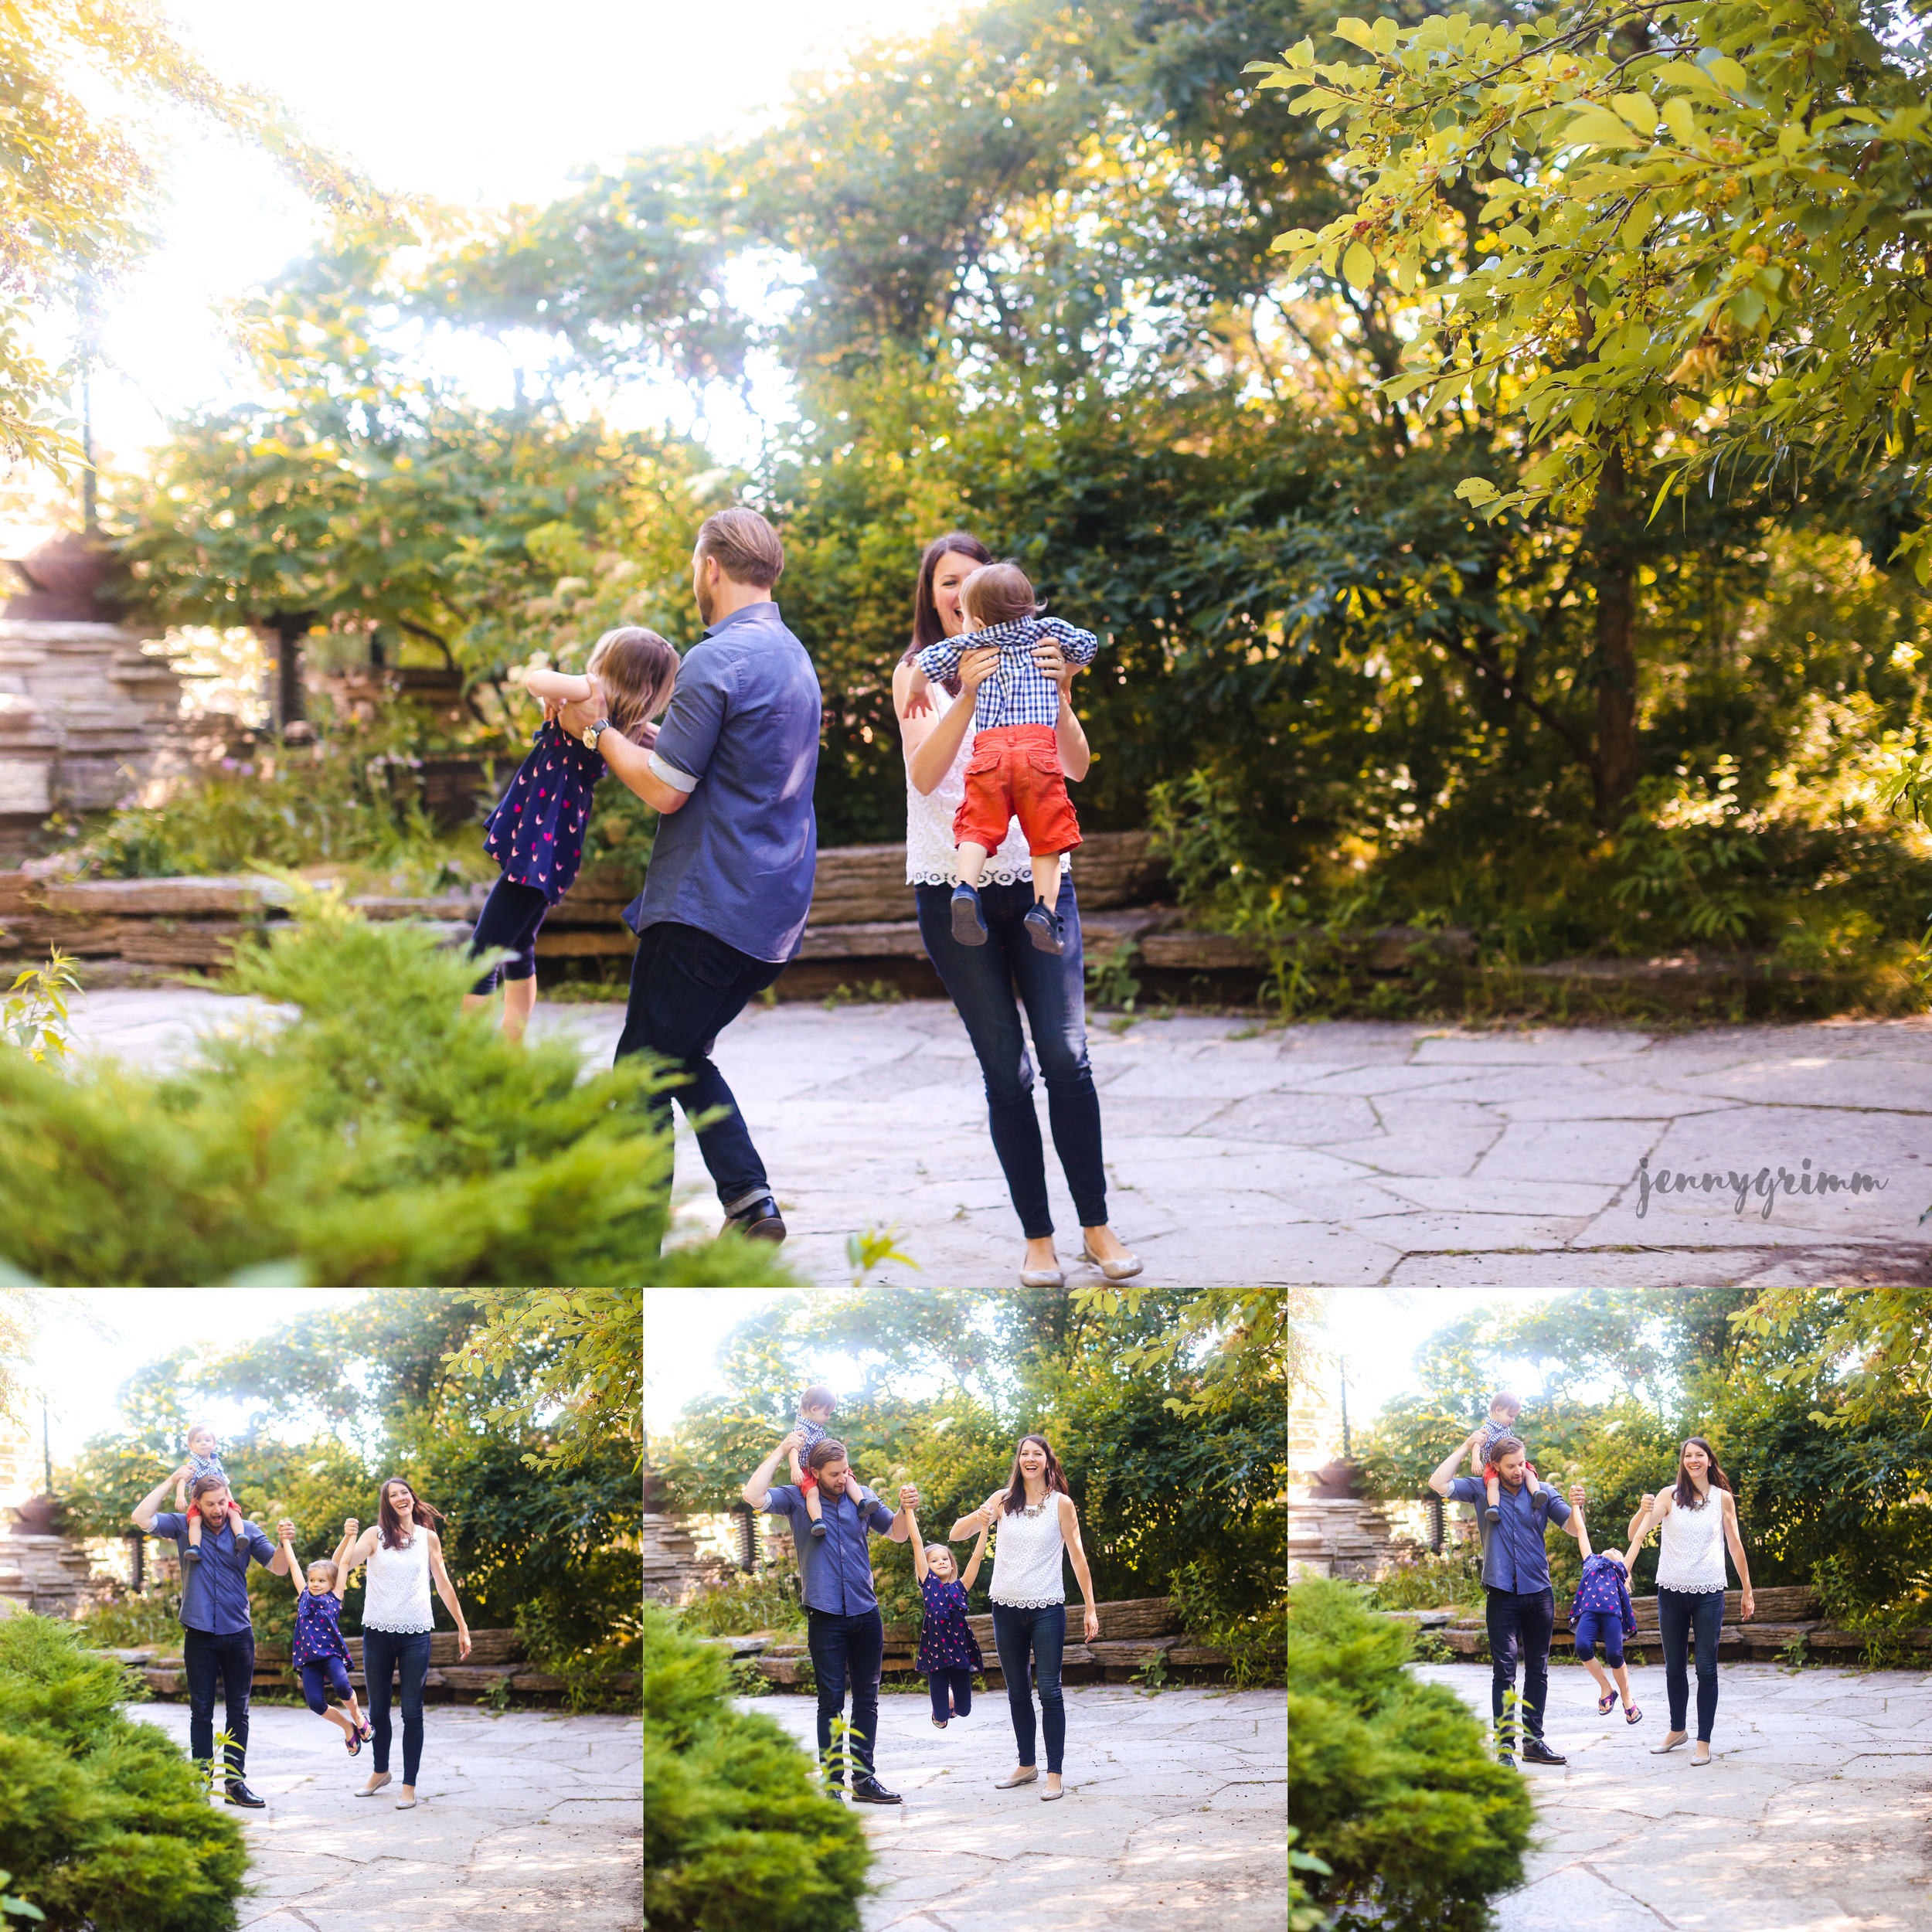 chicago family photographer jenny grimm